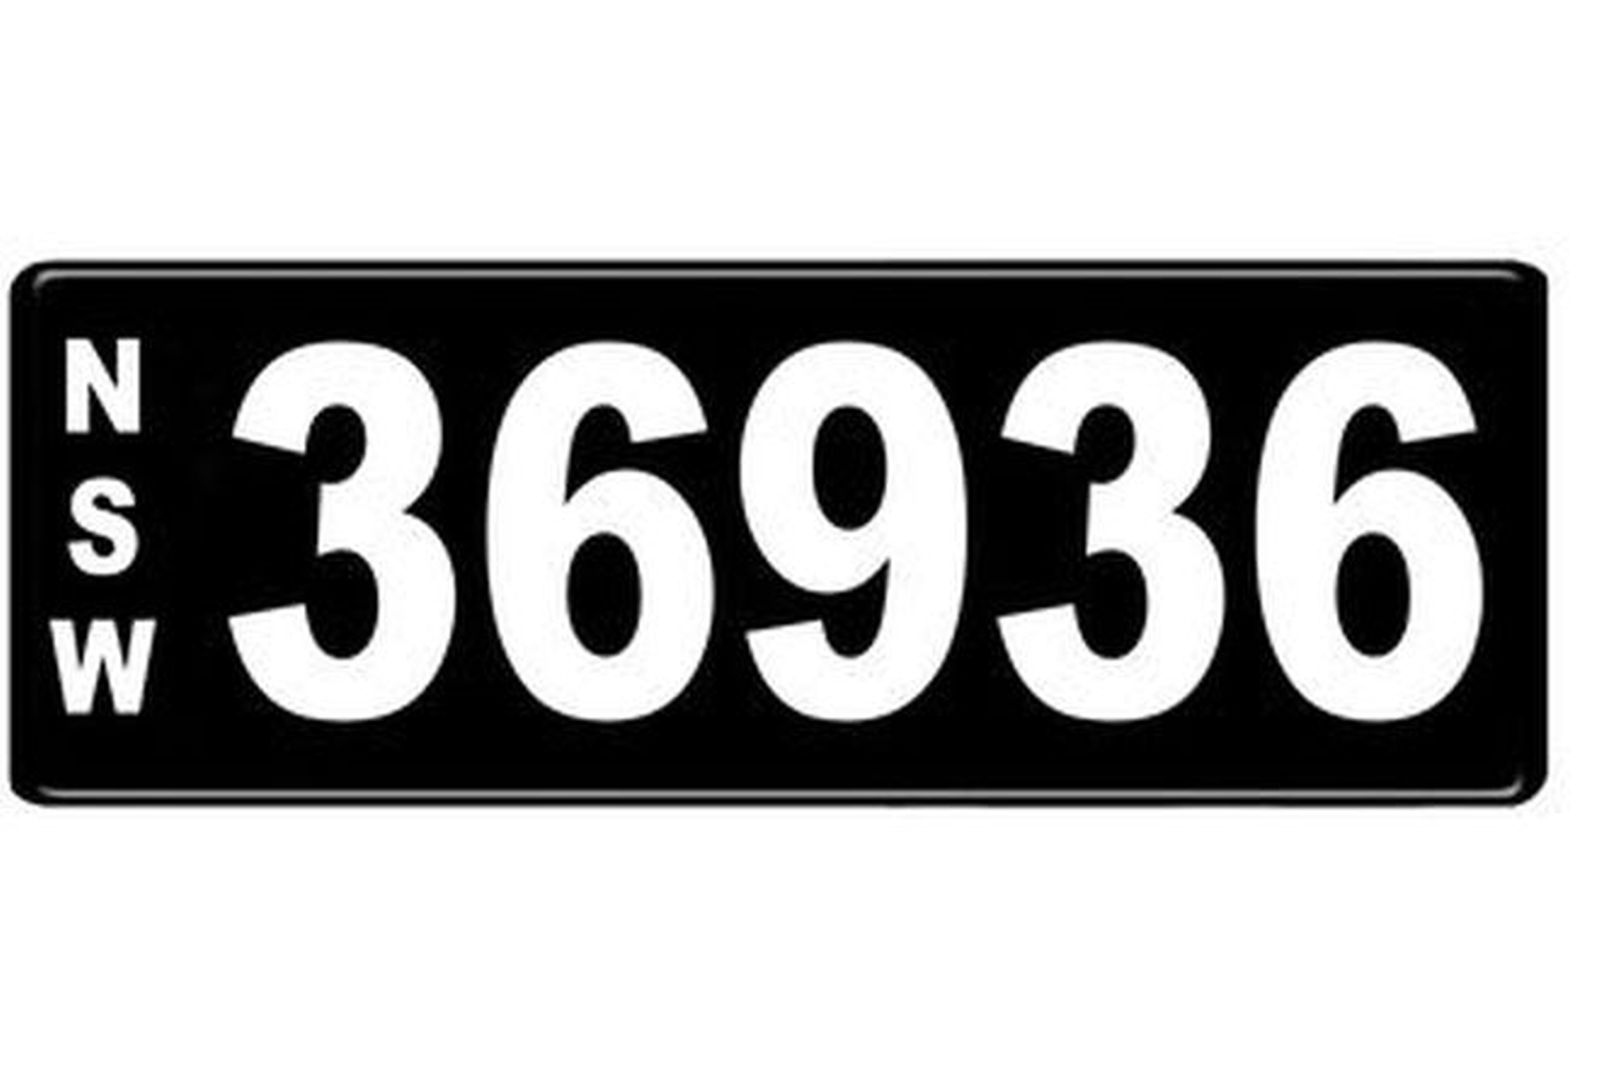 Number Plates - NSW Numerical Number Plates '36936'